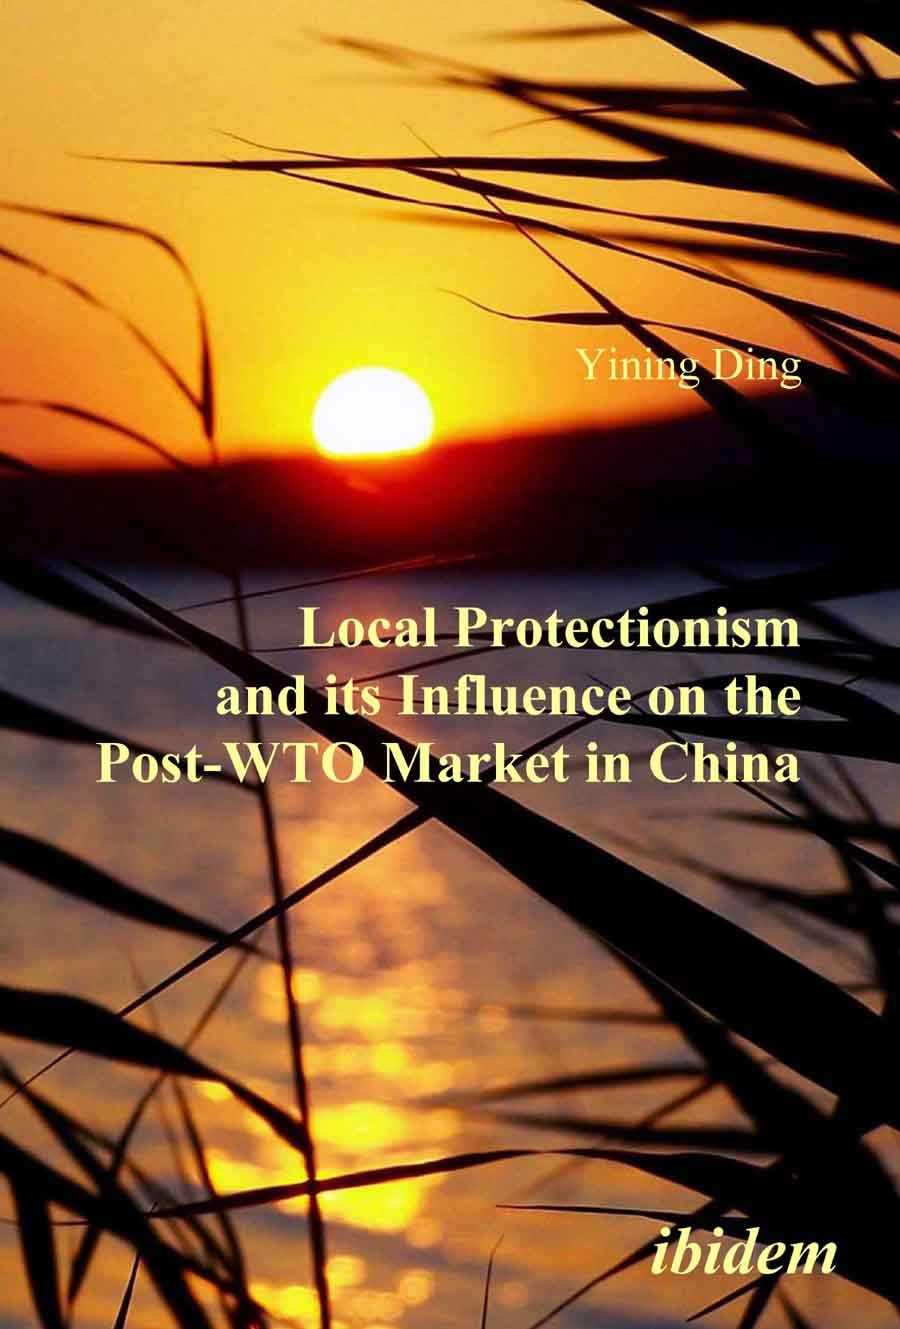 Local Protectionism and its Influence on the Post-WTO Market in China